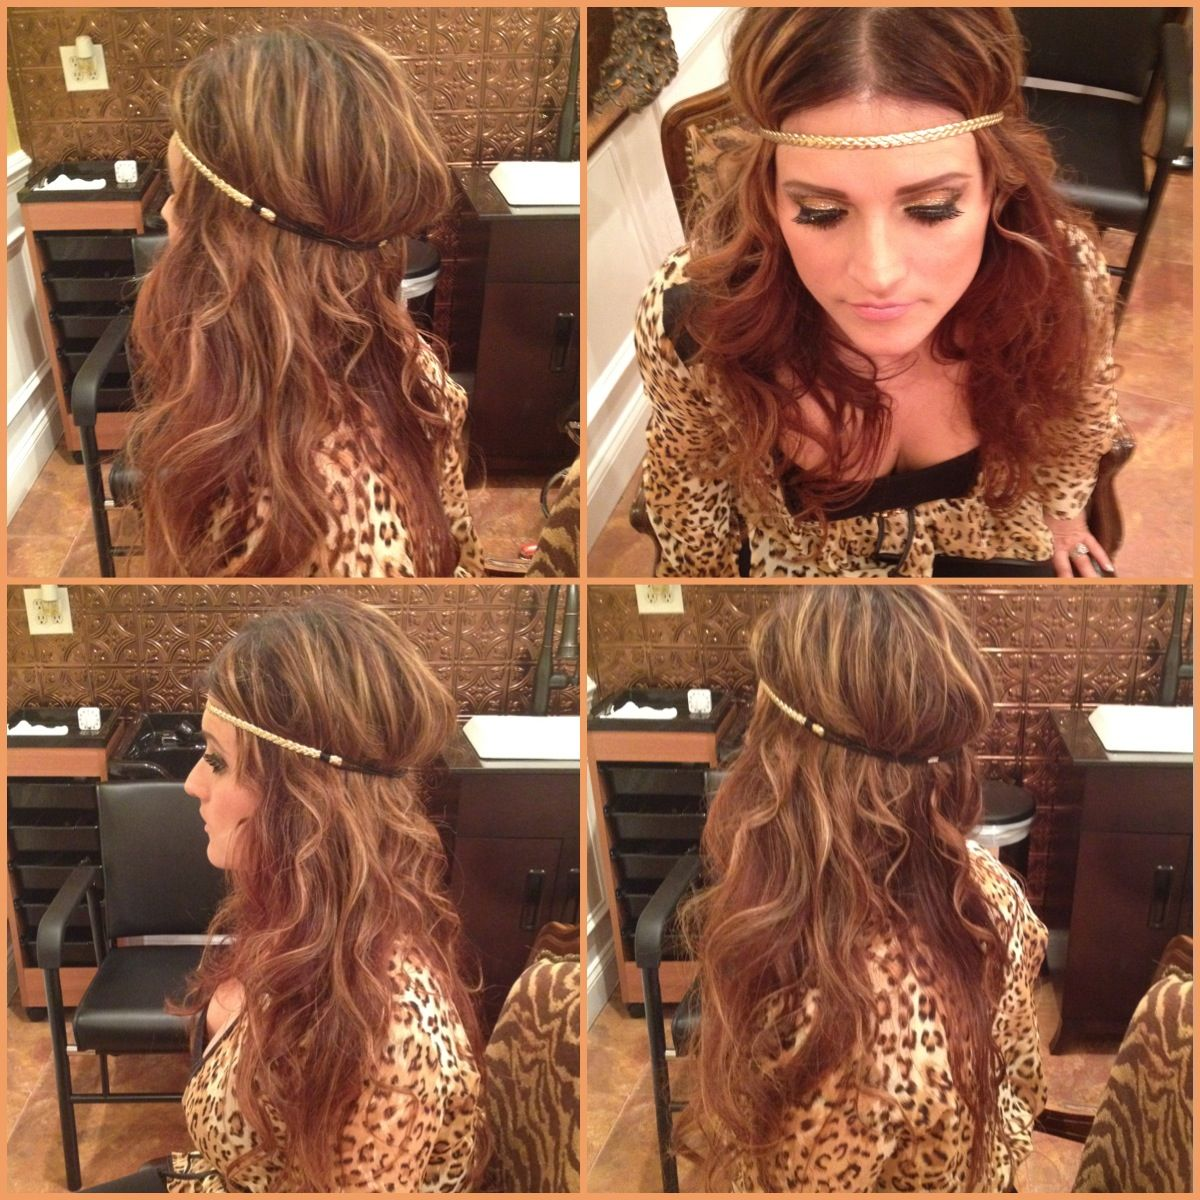 Curls With A Head Band 70s Hair!! By Colorangel5 Hotmail Com